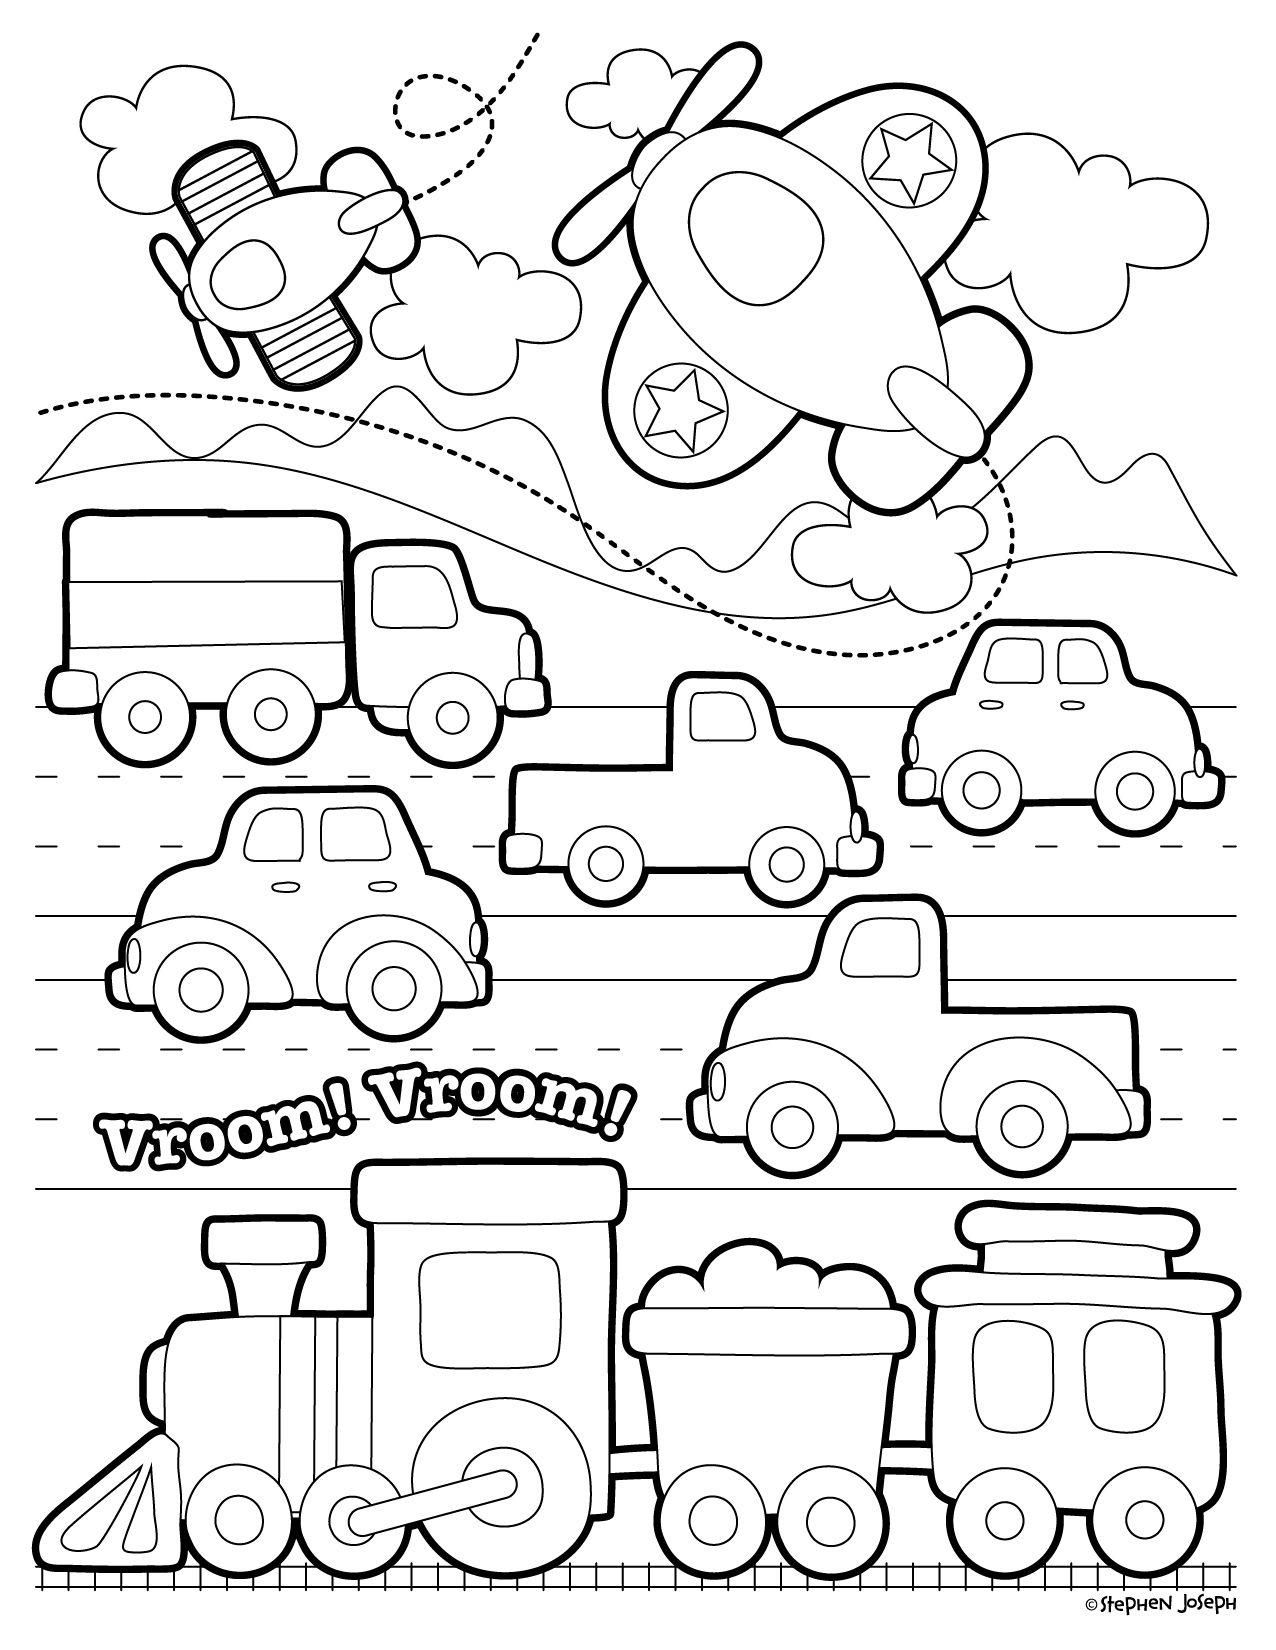 Awesome Coloring Page Transportation That You Must Know